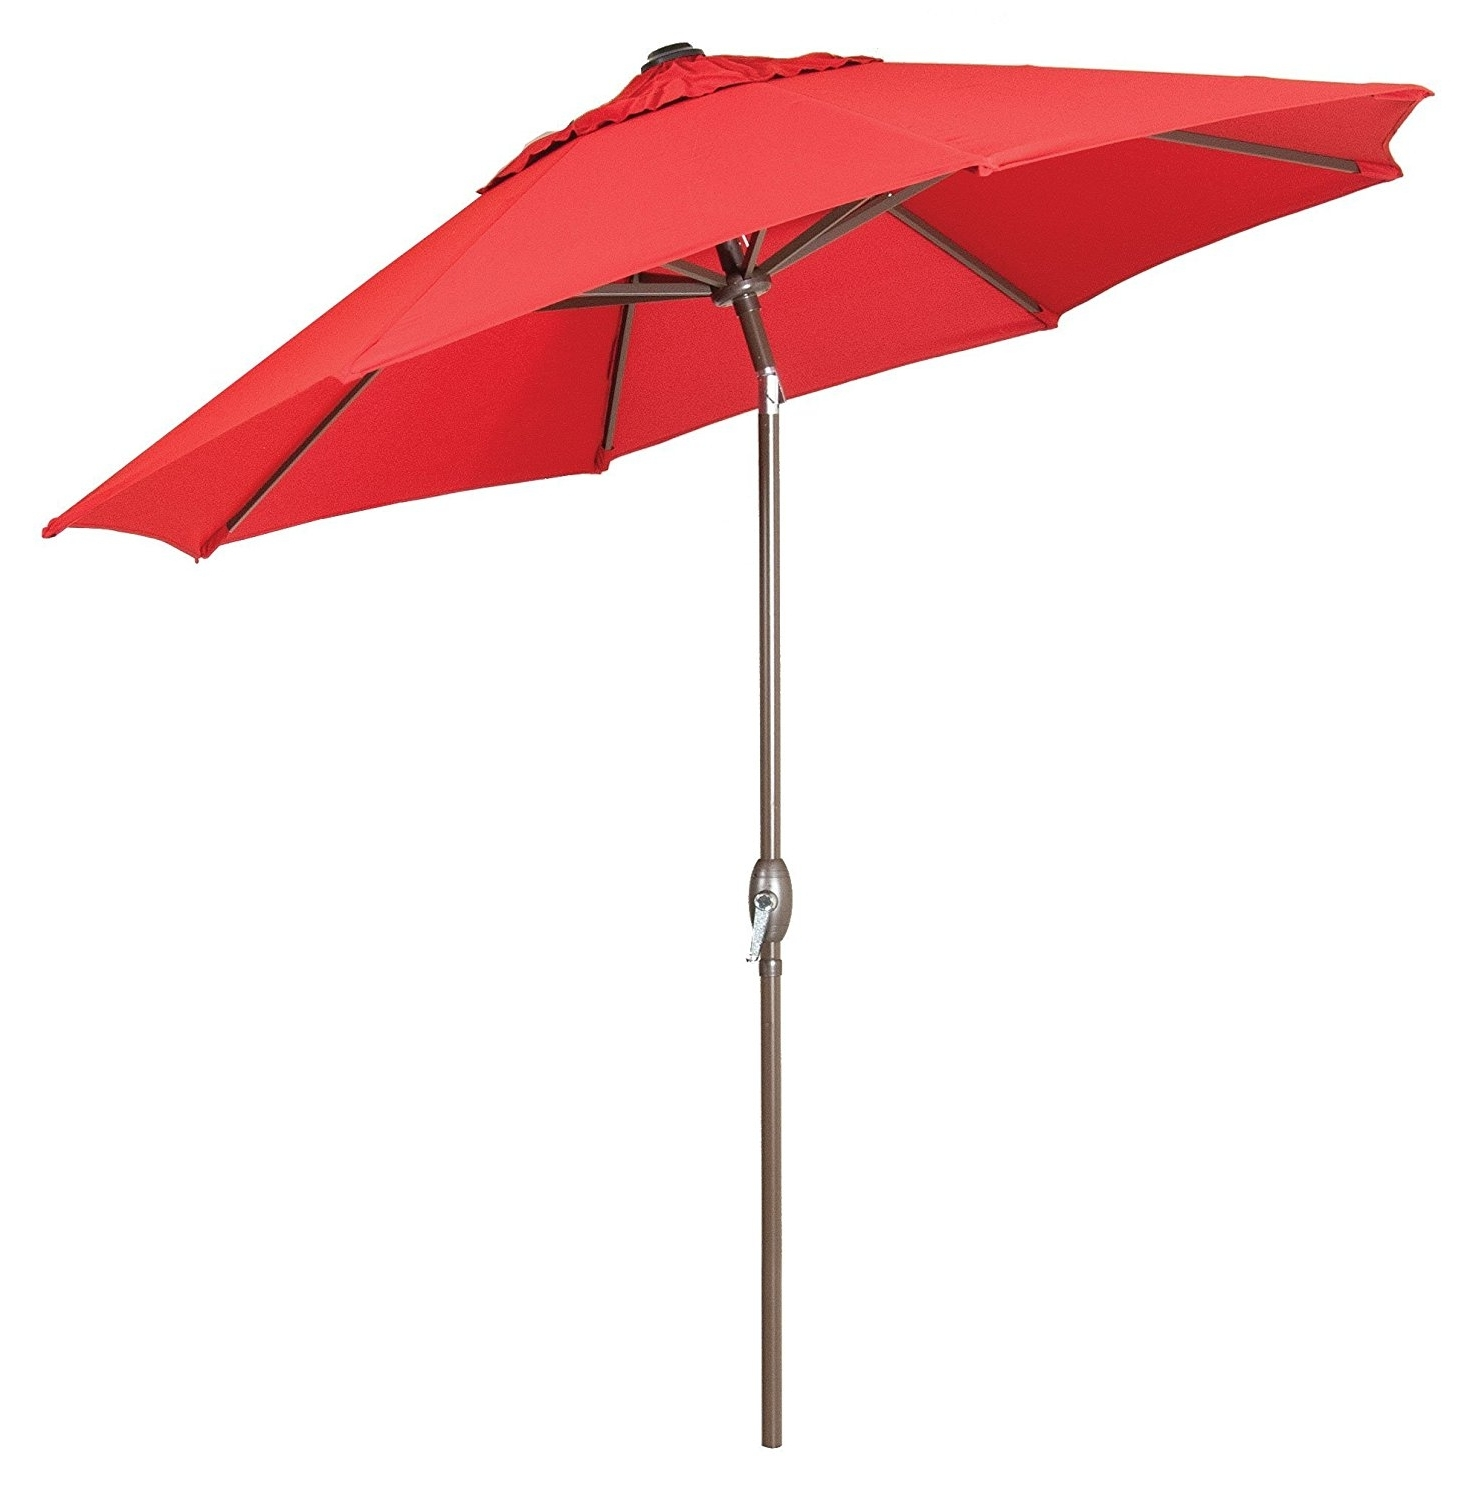 Most Recent Industrial Patio Umbrellas Awesome Amazon Generic 9ft Red Sunshade For Amazon Patio Umbrellas (View 12 of 20)